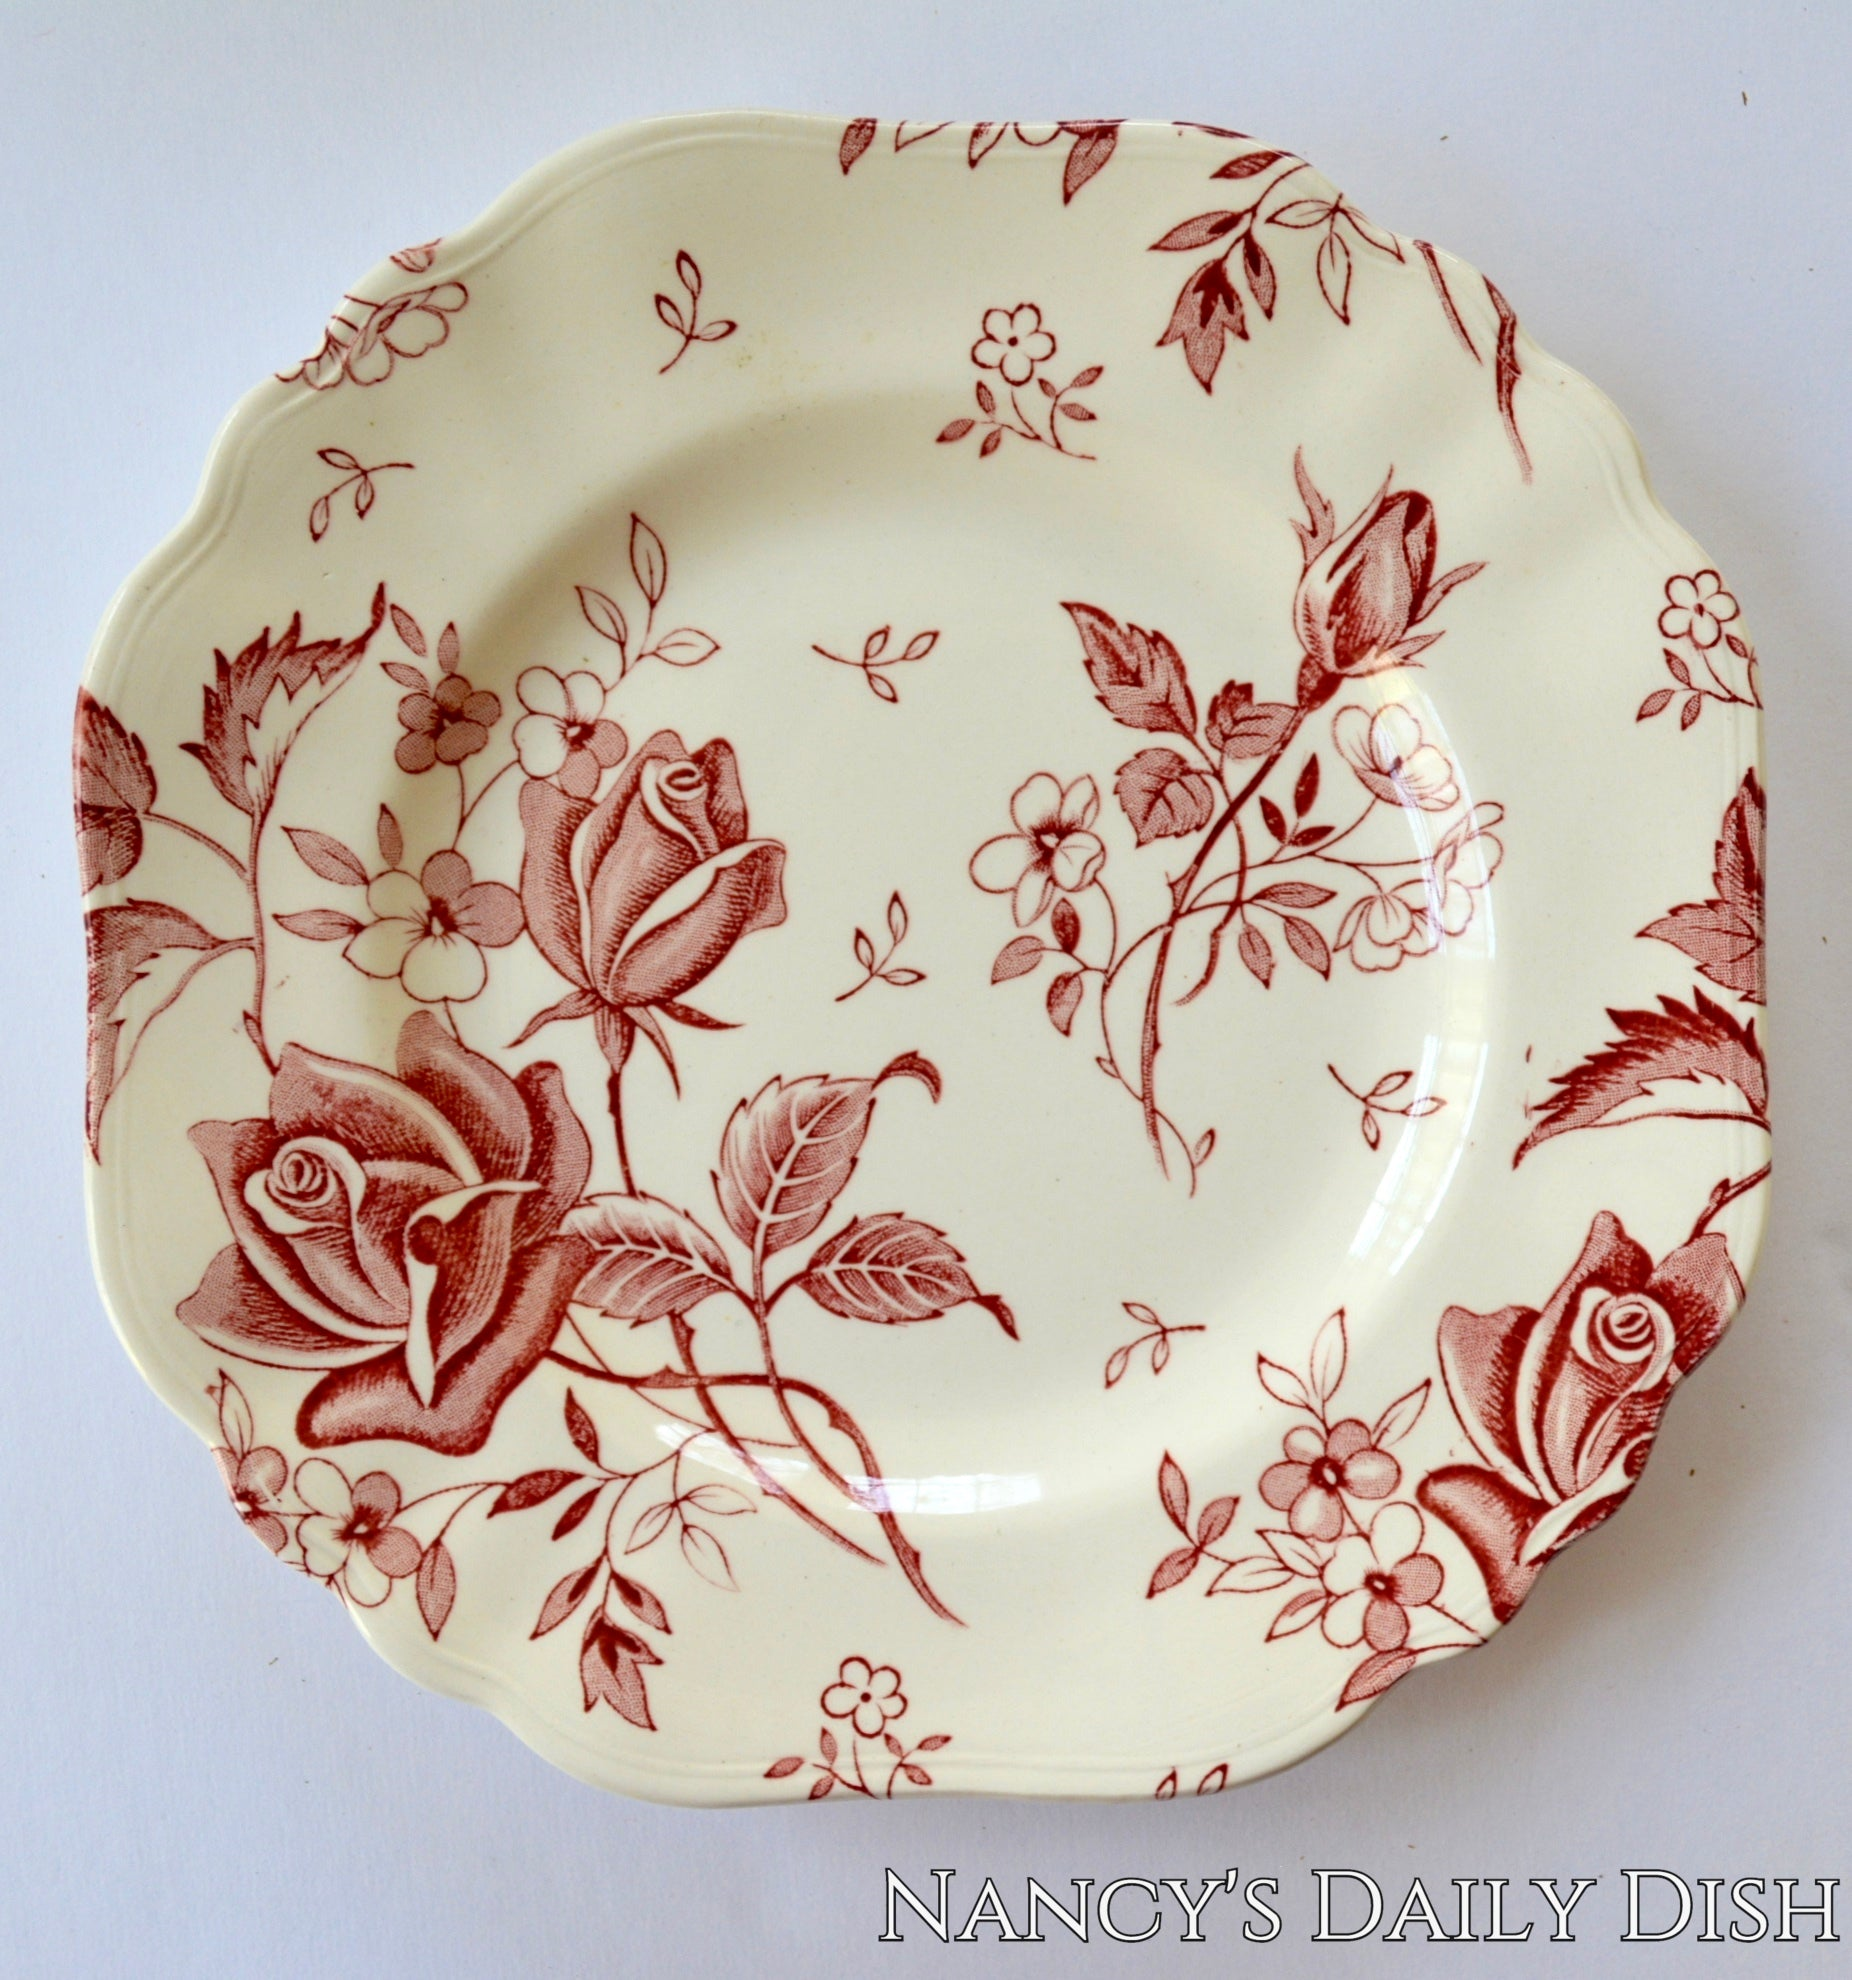 Red Square Plate Tudor Roses Rosebuds Vintage English Transferware Toile Flowers & Red Square Plate Tudor Roses Rosebuds Vintage English Transferware Toi